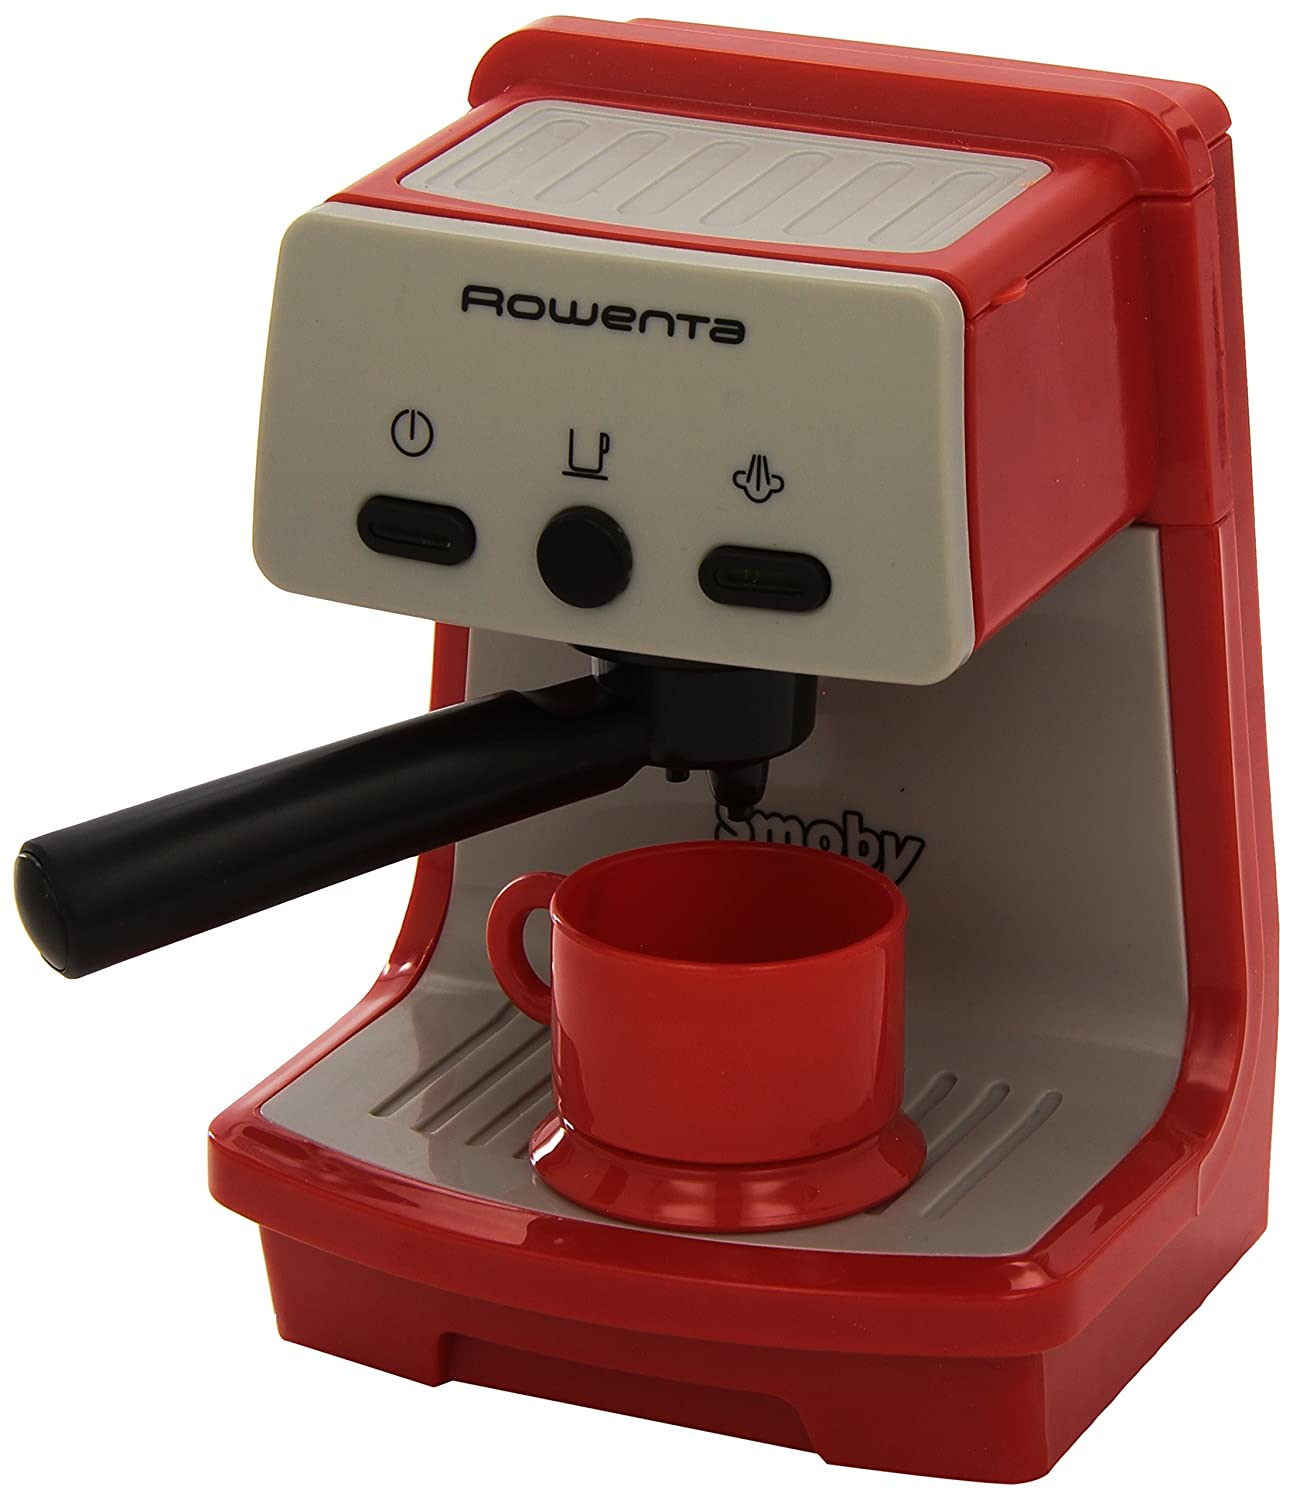 Smoby Rowenta Espresso Machine Multi Colour Amazon Co Uk Toys